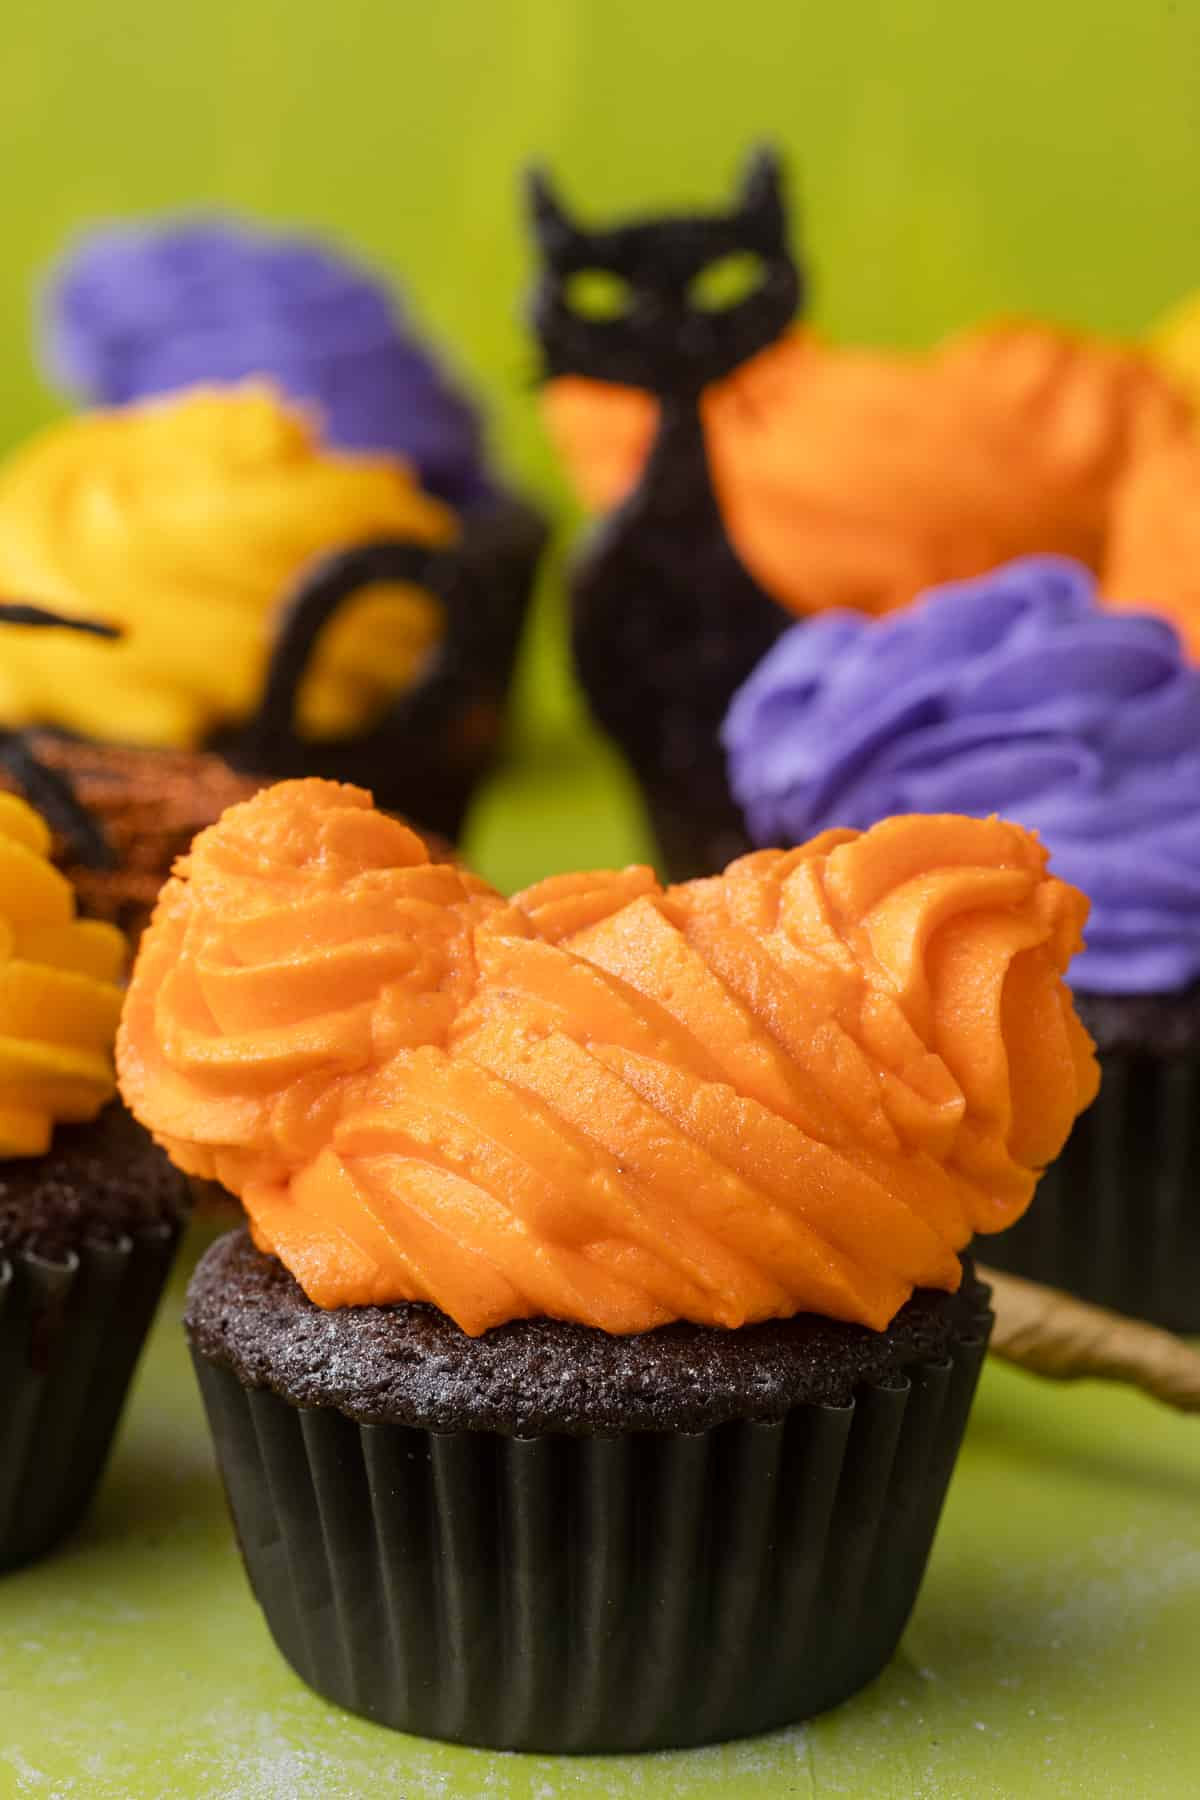 A chocolate cupcake with frosting piped to resemble the witches from Hocus Pocus.